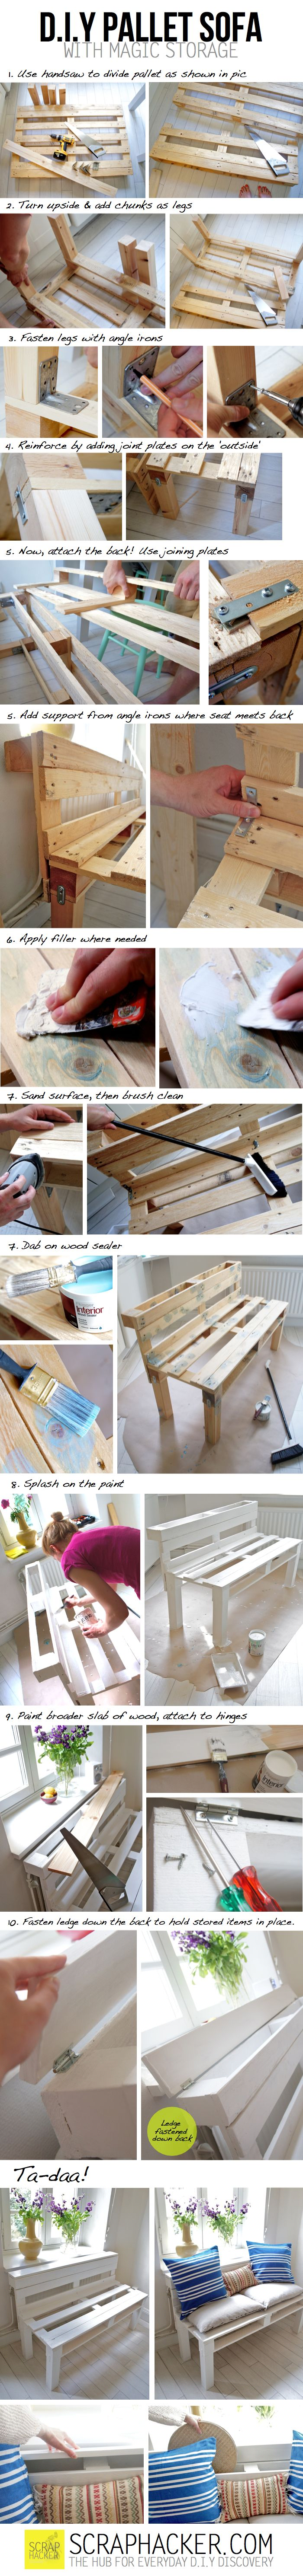 Diy Projects: Make Your Magic Storage Pallet Sofa